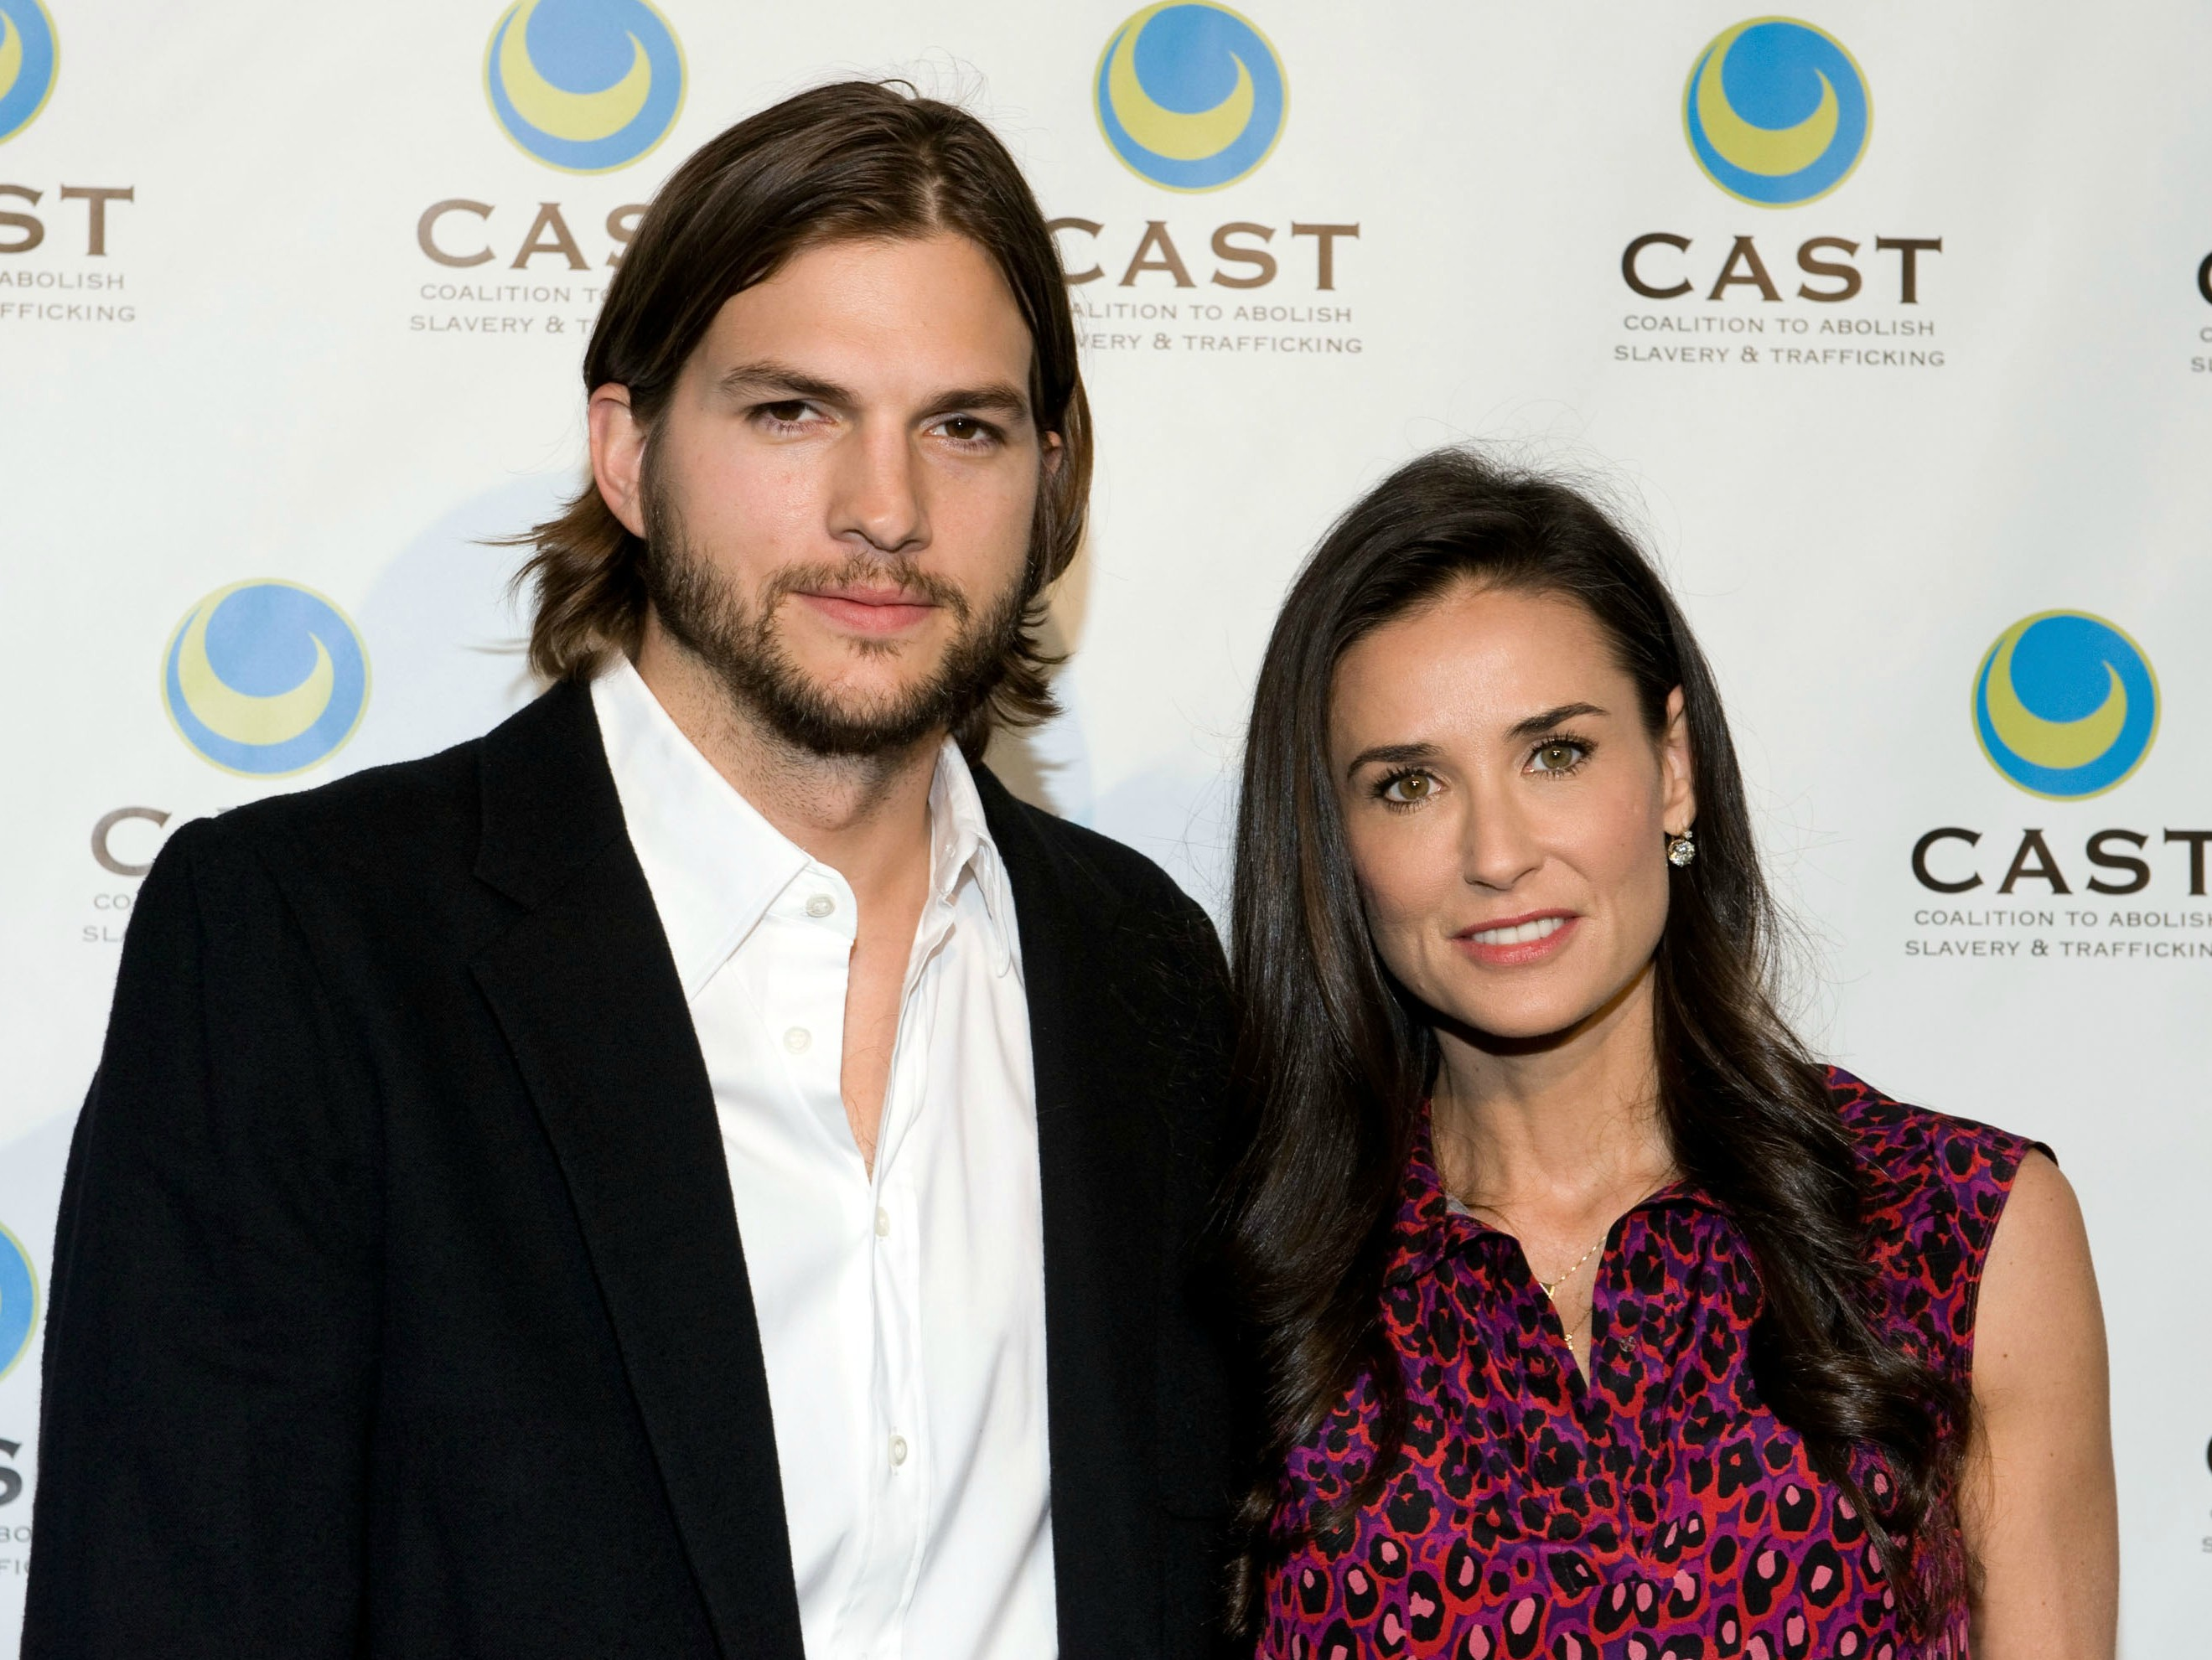 Ashton Kutcher didn't eat for a week after Demi Moore divorce